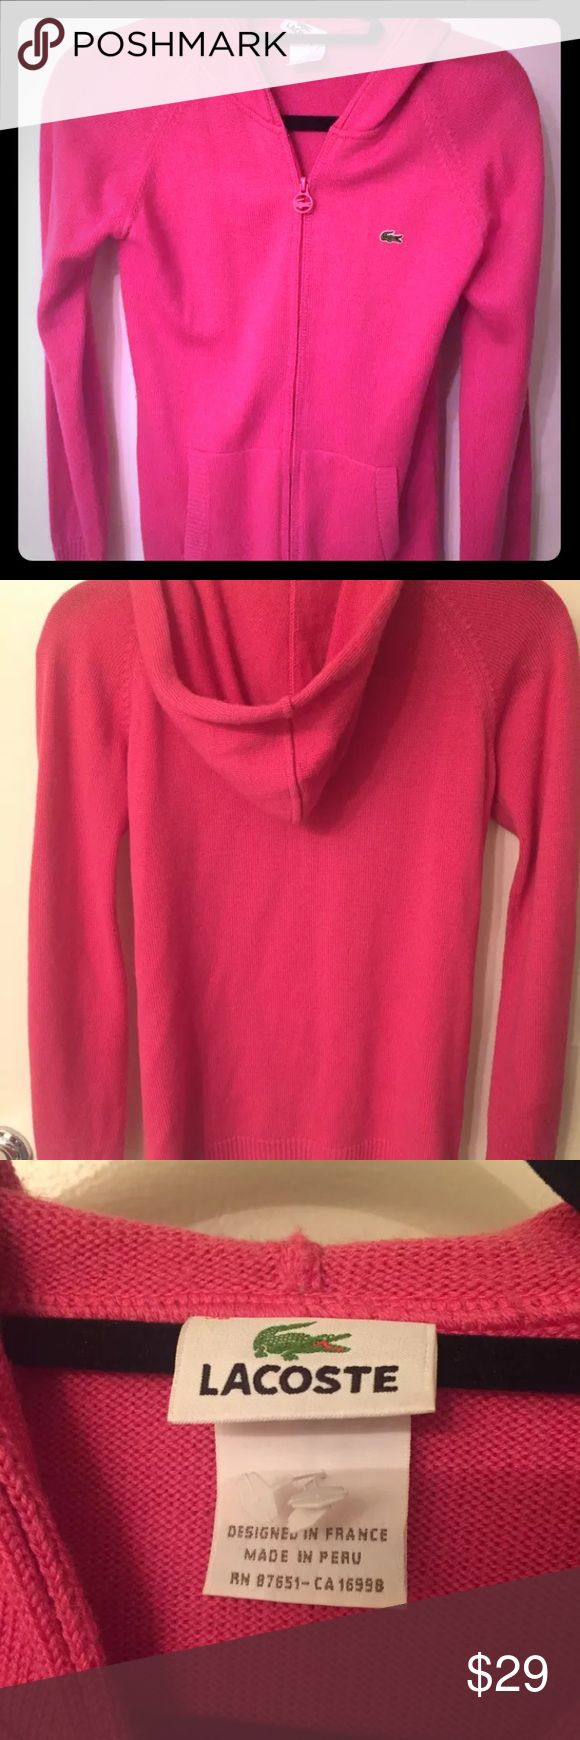 Lacoste Pink Zip Up Hoodie Great condition and super preppy and cute! Size 38 which is a medium Lacoste Sweaters